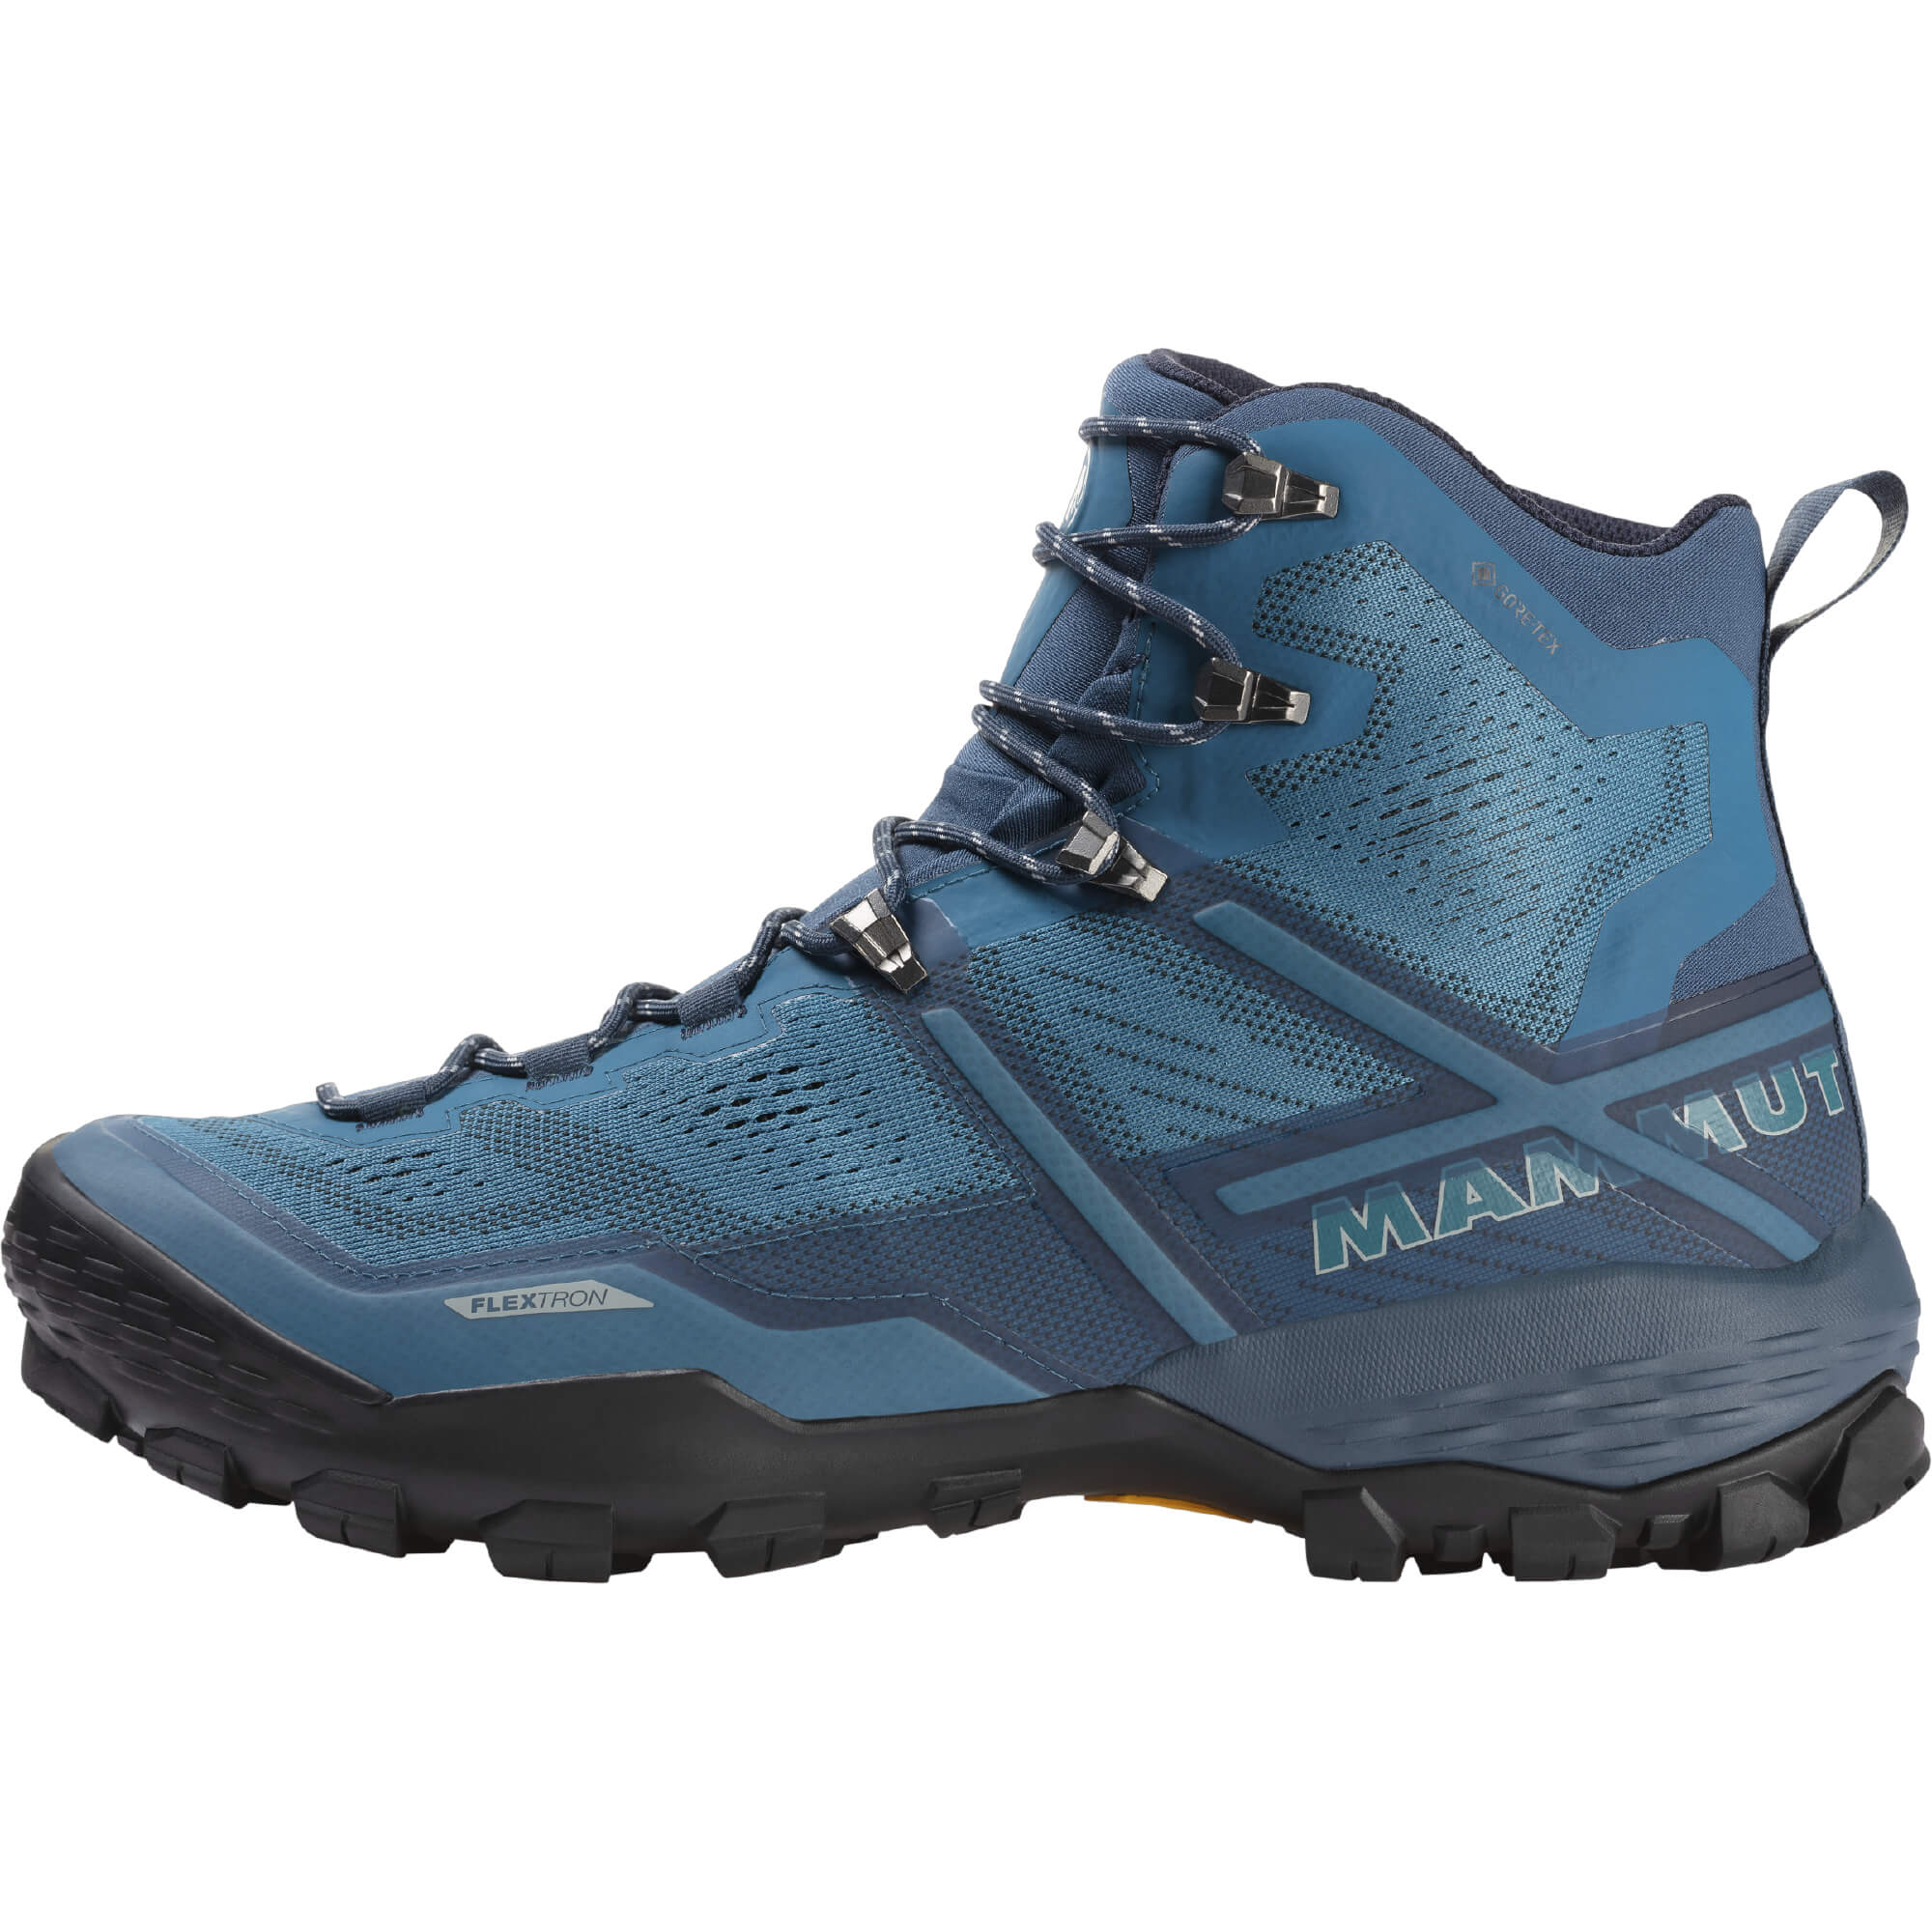 Ducan High GTX® imagine produs